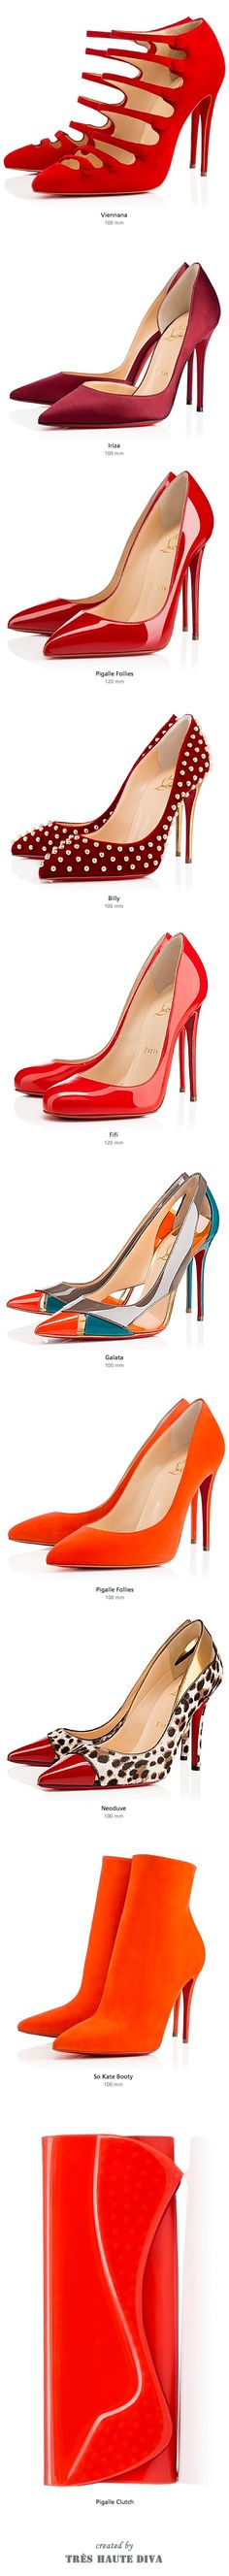 Christian Louboutin Red & Orange, FW'14 ♔THD♔ - Find 150+ Top Online Shoe Stores via http://AmericasMall.com/categories/shoes.html